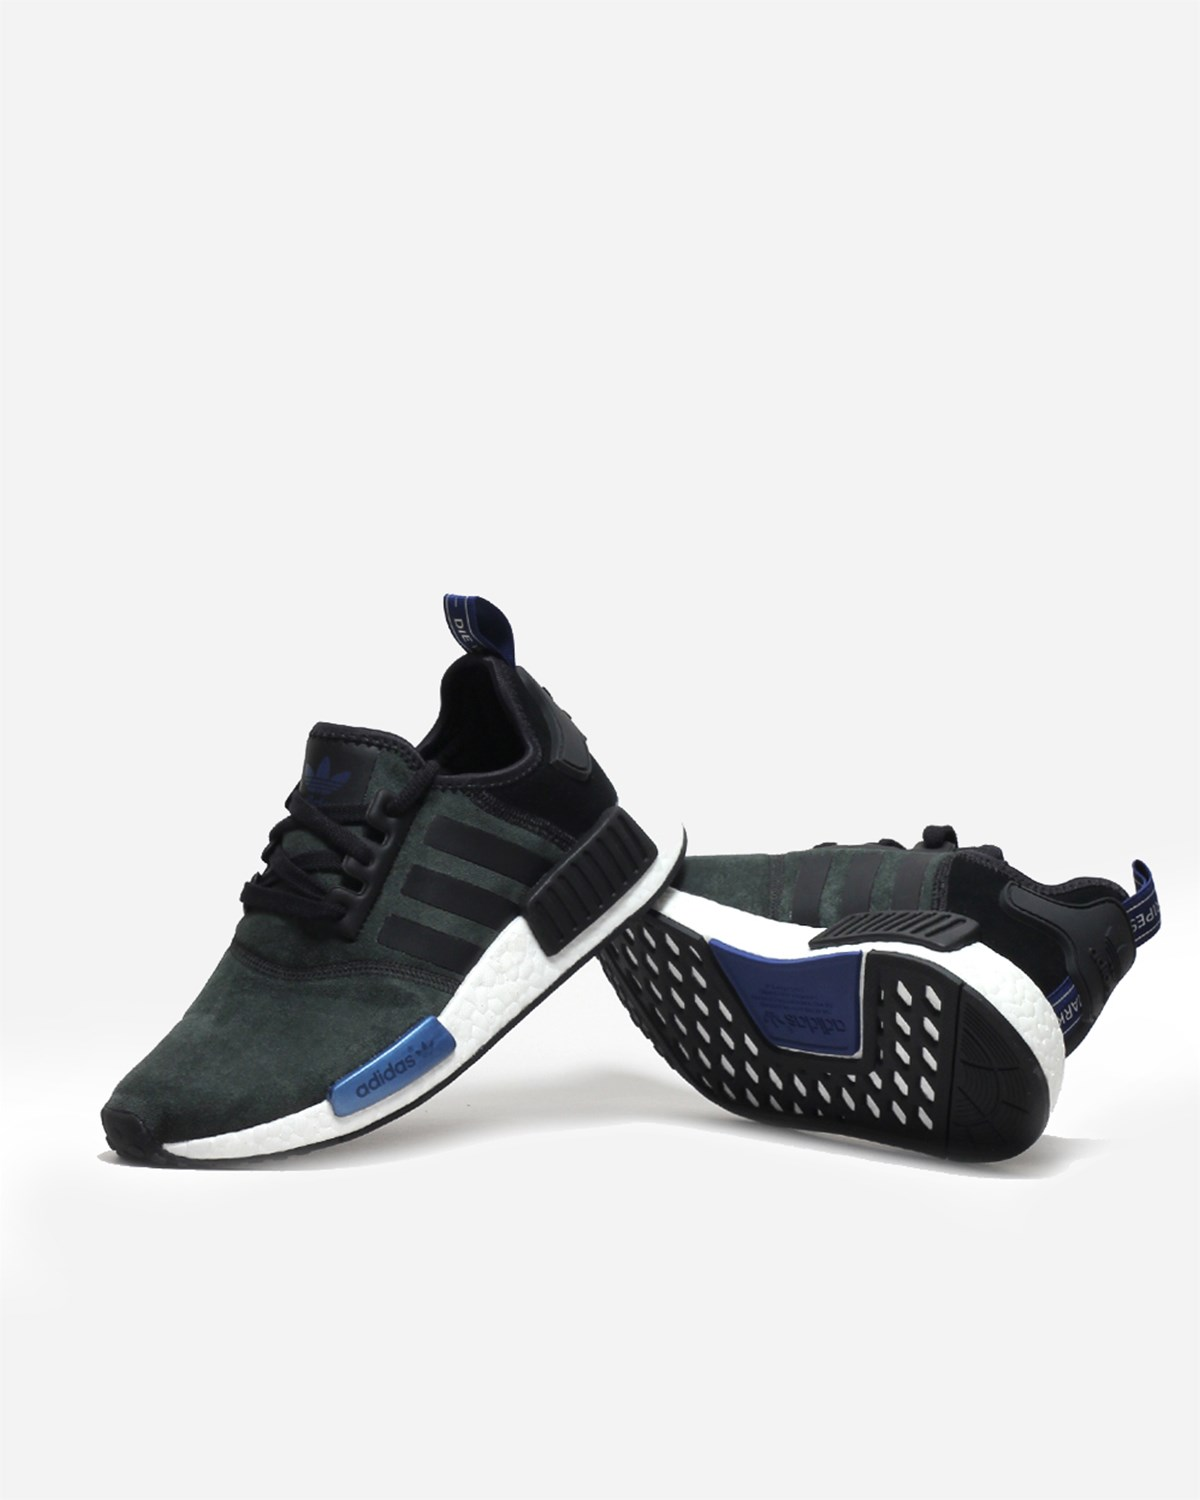 NMD R1 PK Winter Wool Core Black Shoes Artemis Outlet